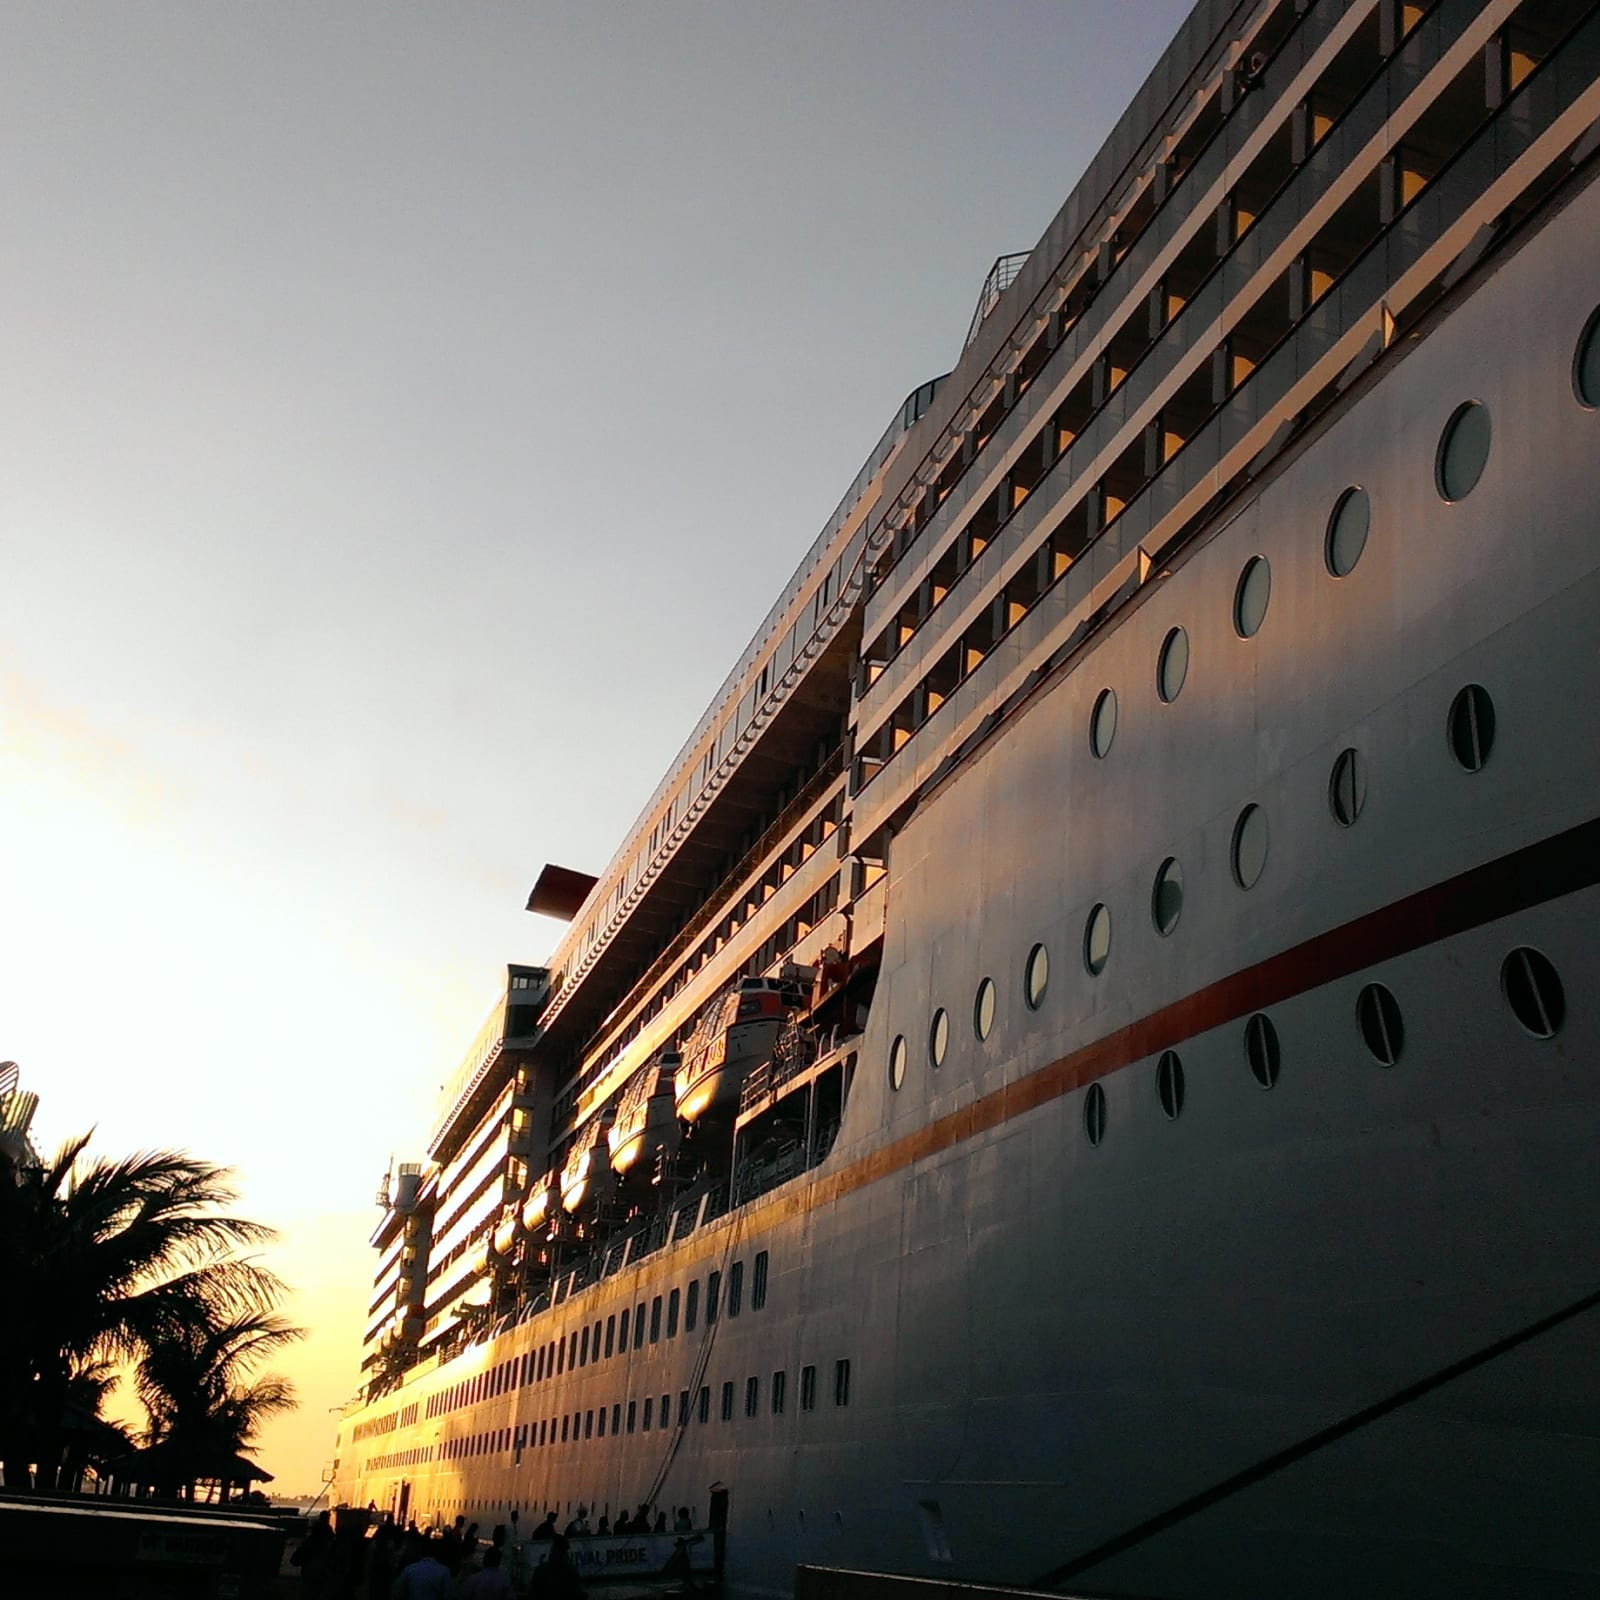 Cruise Insurance Fee Waiver Programs What To Know ValuePenguin - Buying a cruise ship